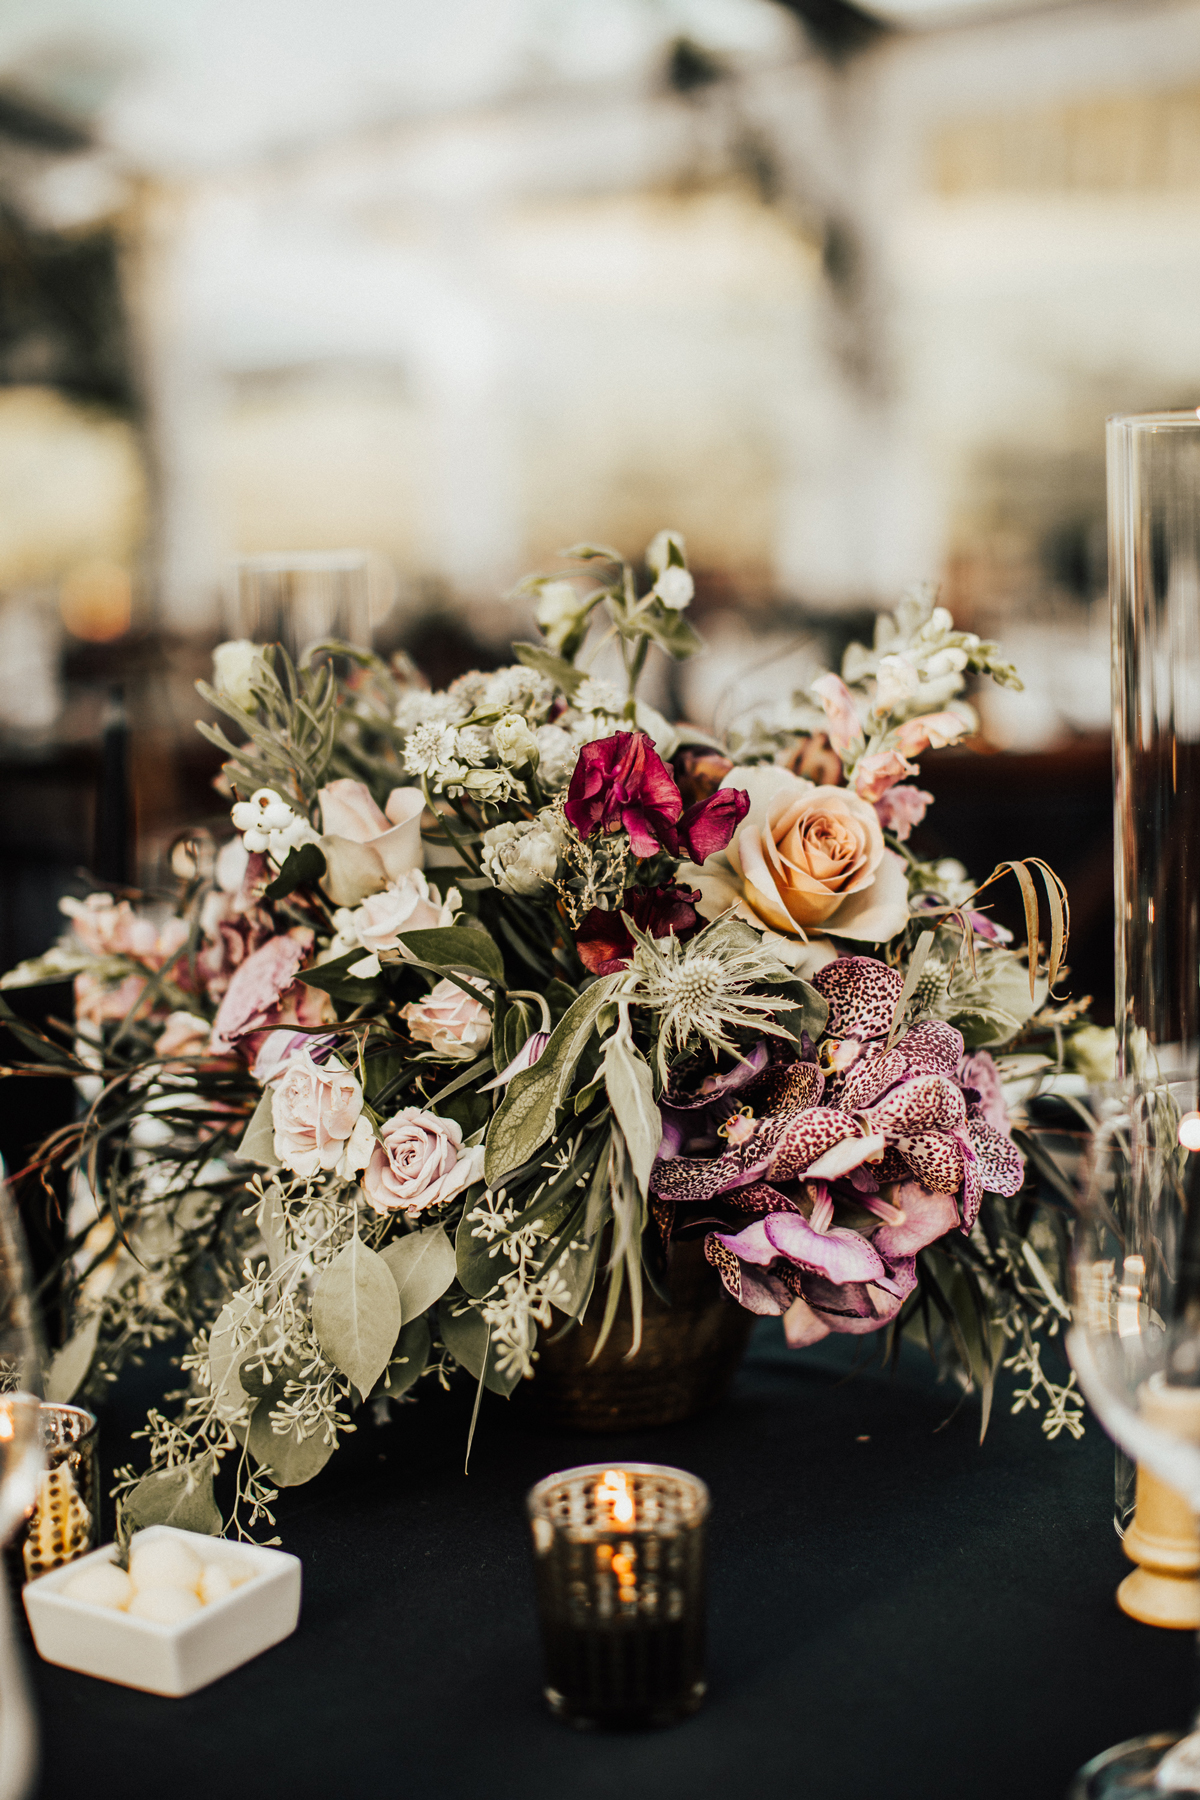 A Moody, Gothic-Inspired Wedding in a Vermont Birch Grove